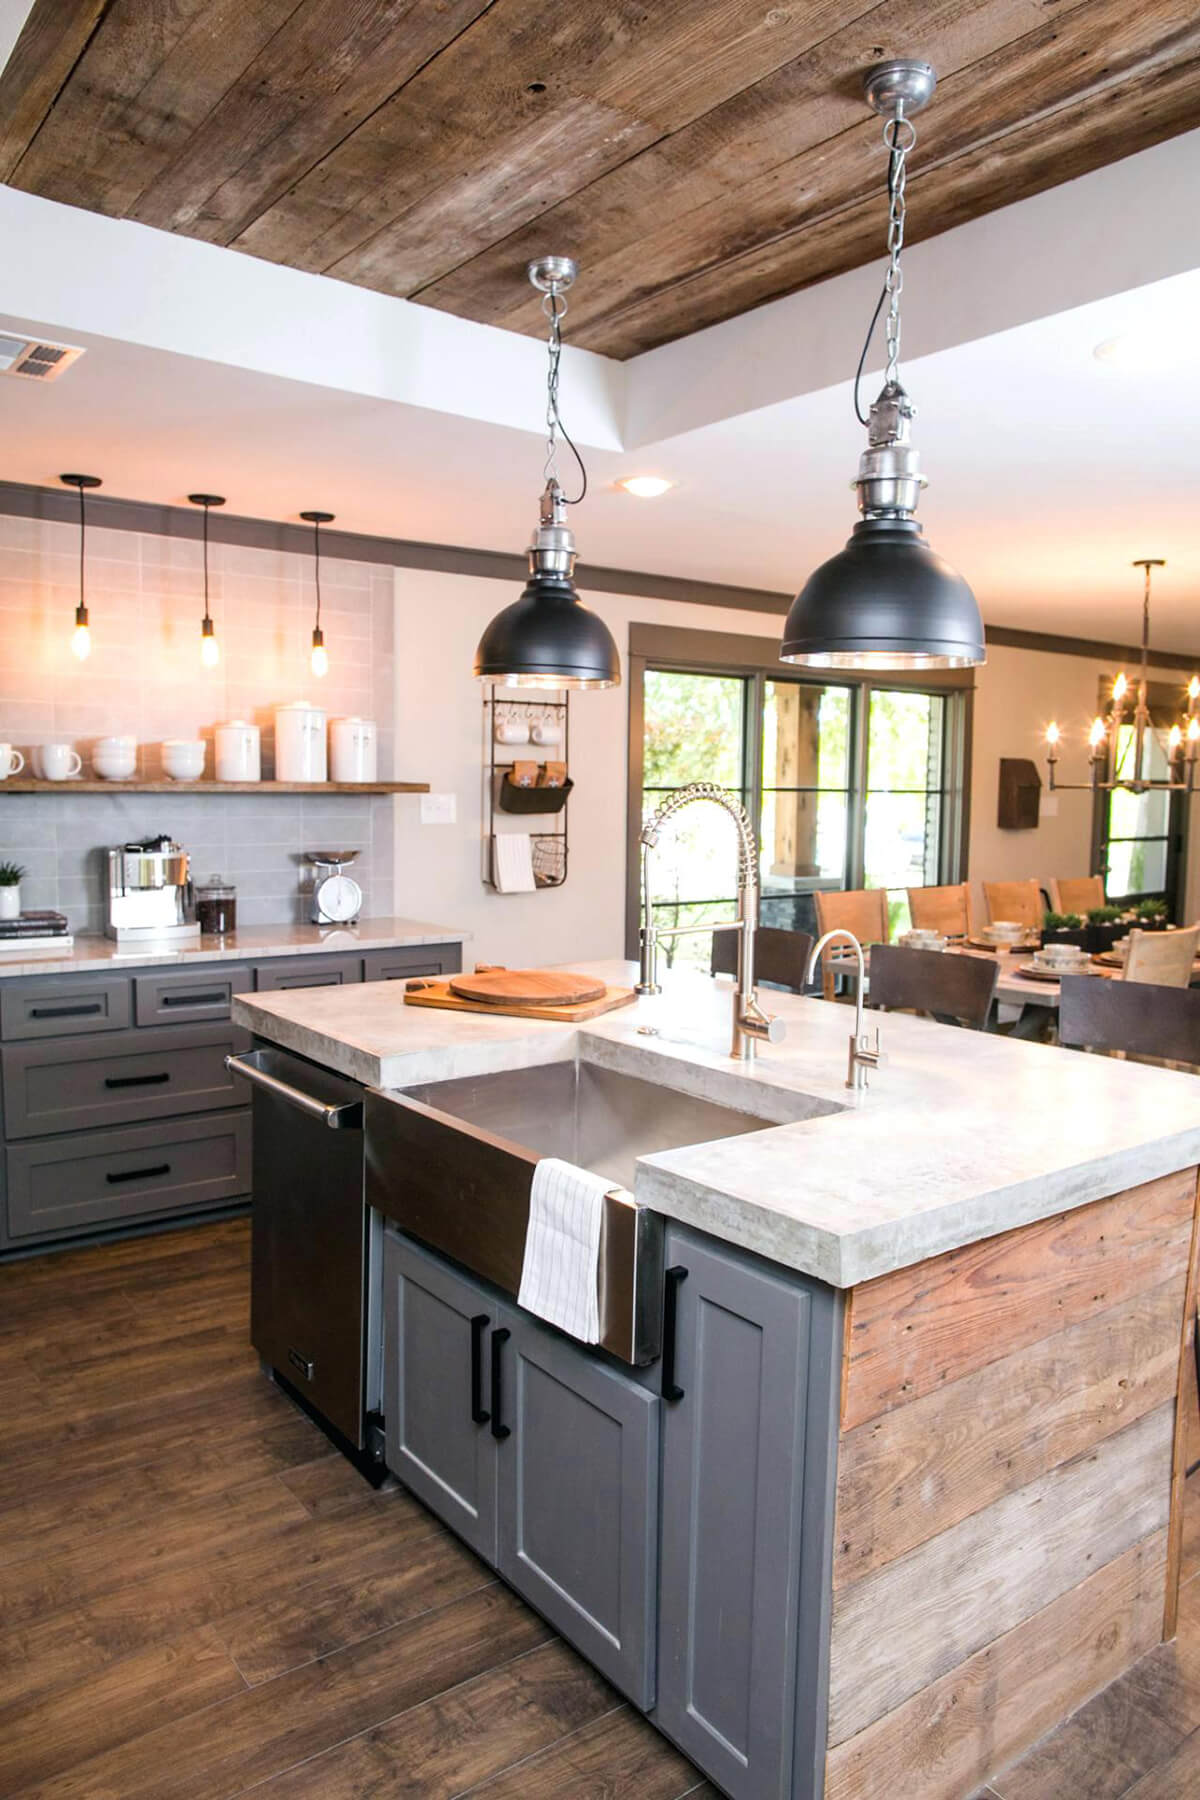 Grayscale Shiplap Cabinets with Rustic Vibes